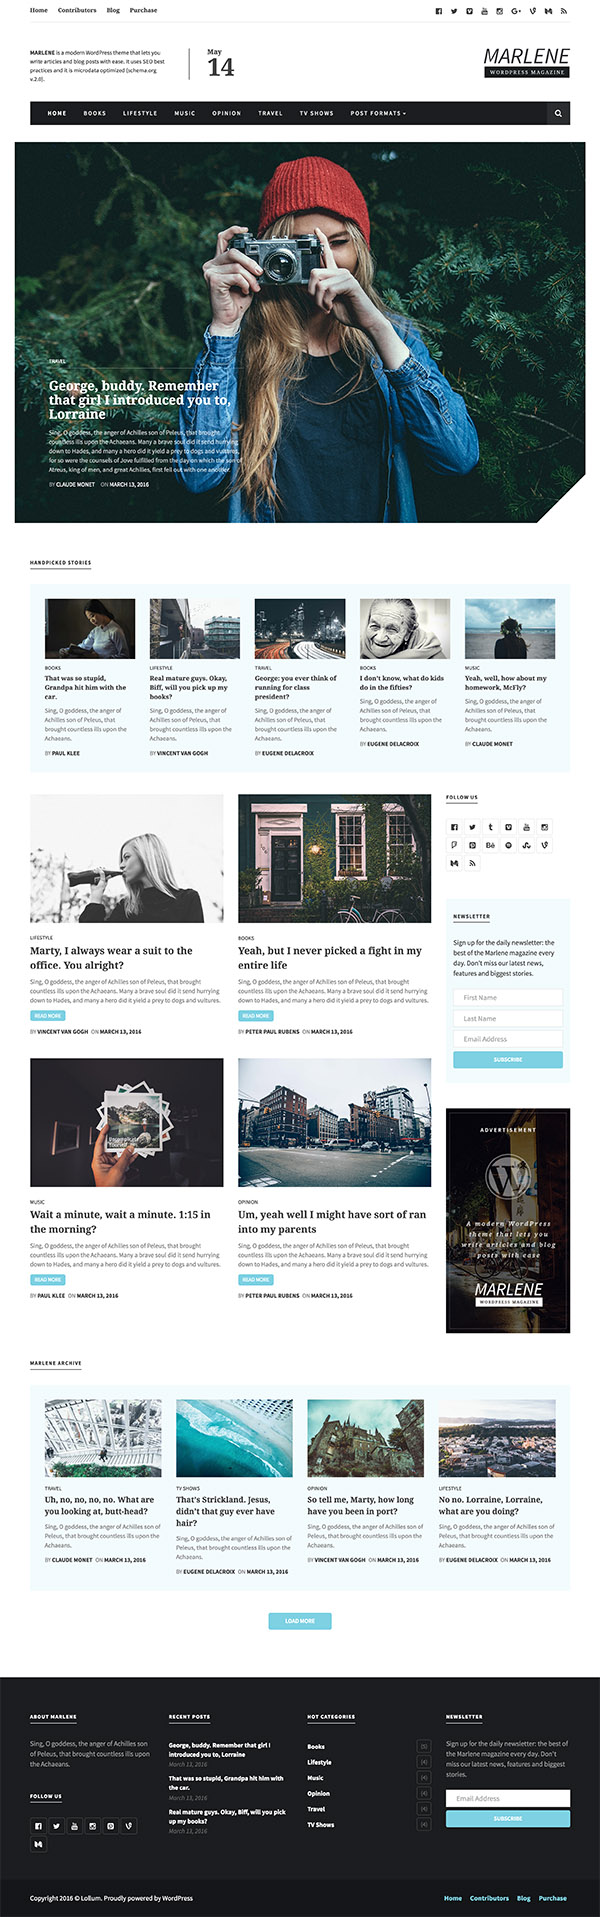 17 Marlene - Magazine and Personal Blog WordPress Theme